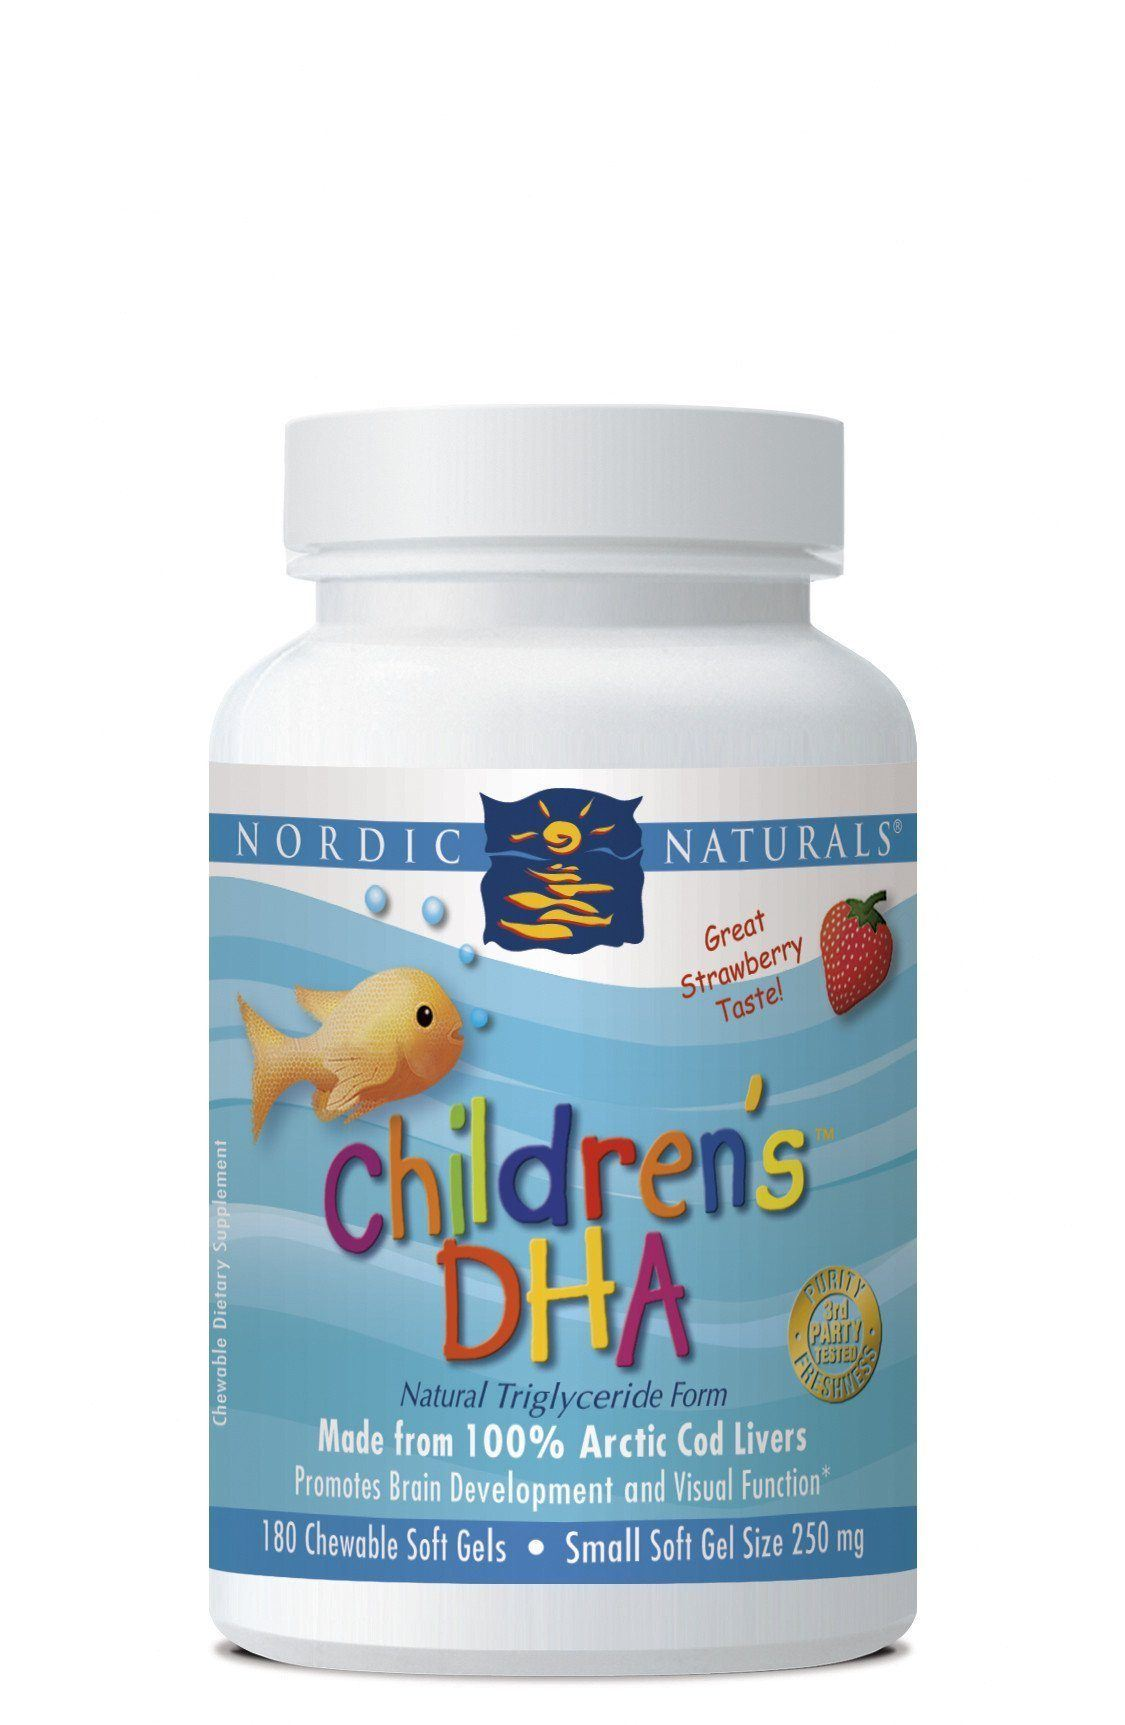 Supplements & Vitamins - Nordic Naturals - Children's DHA Strawberry, 180 Chewables